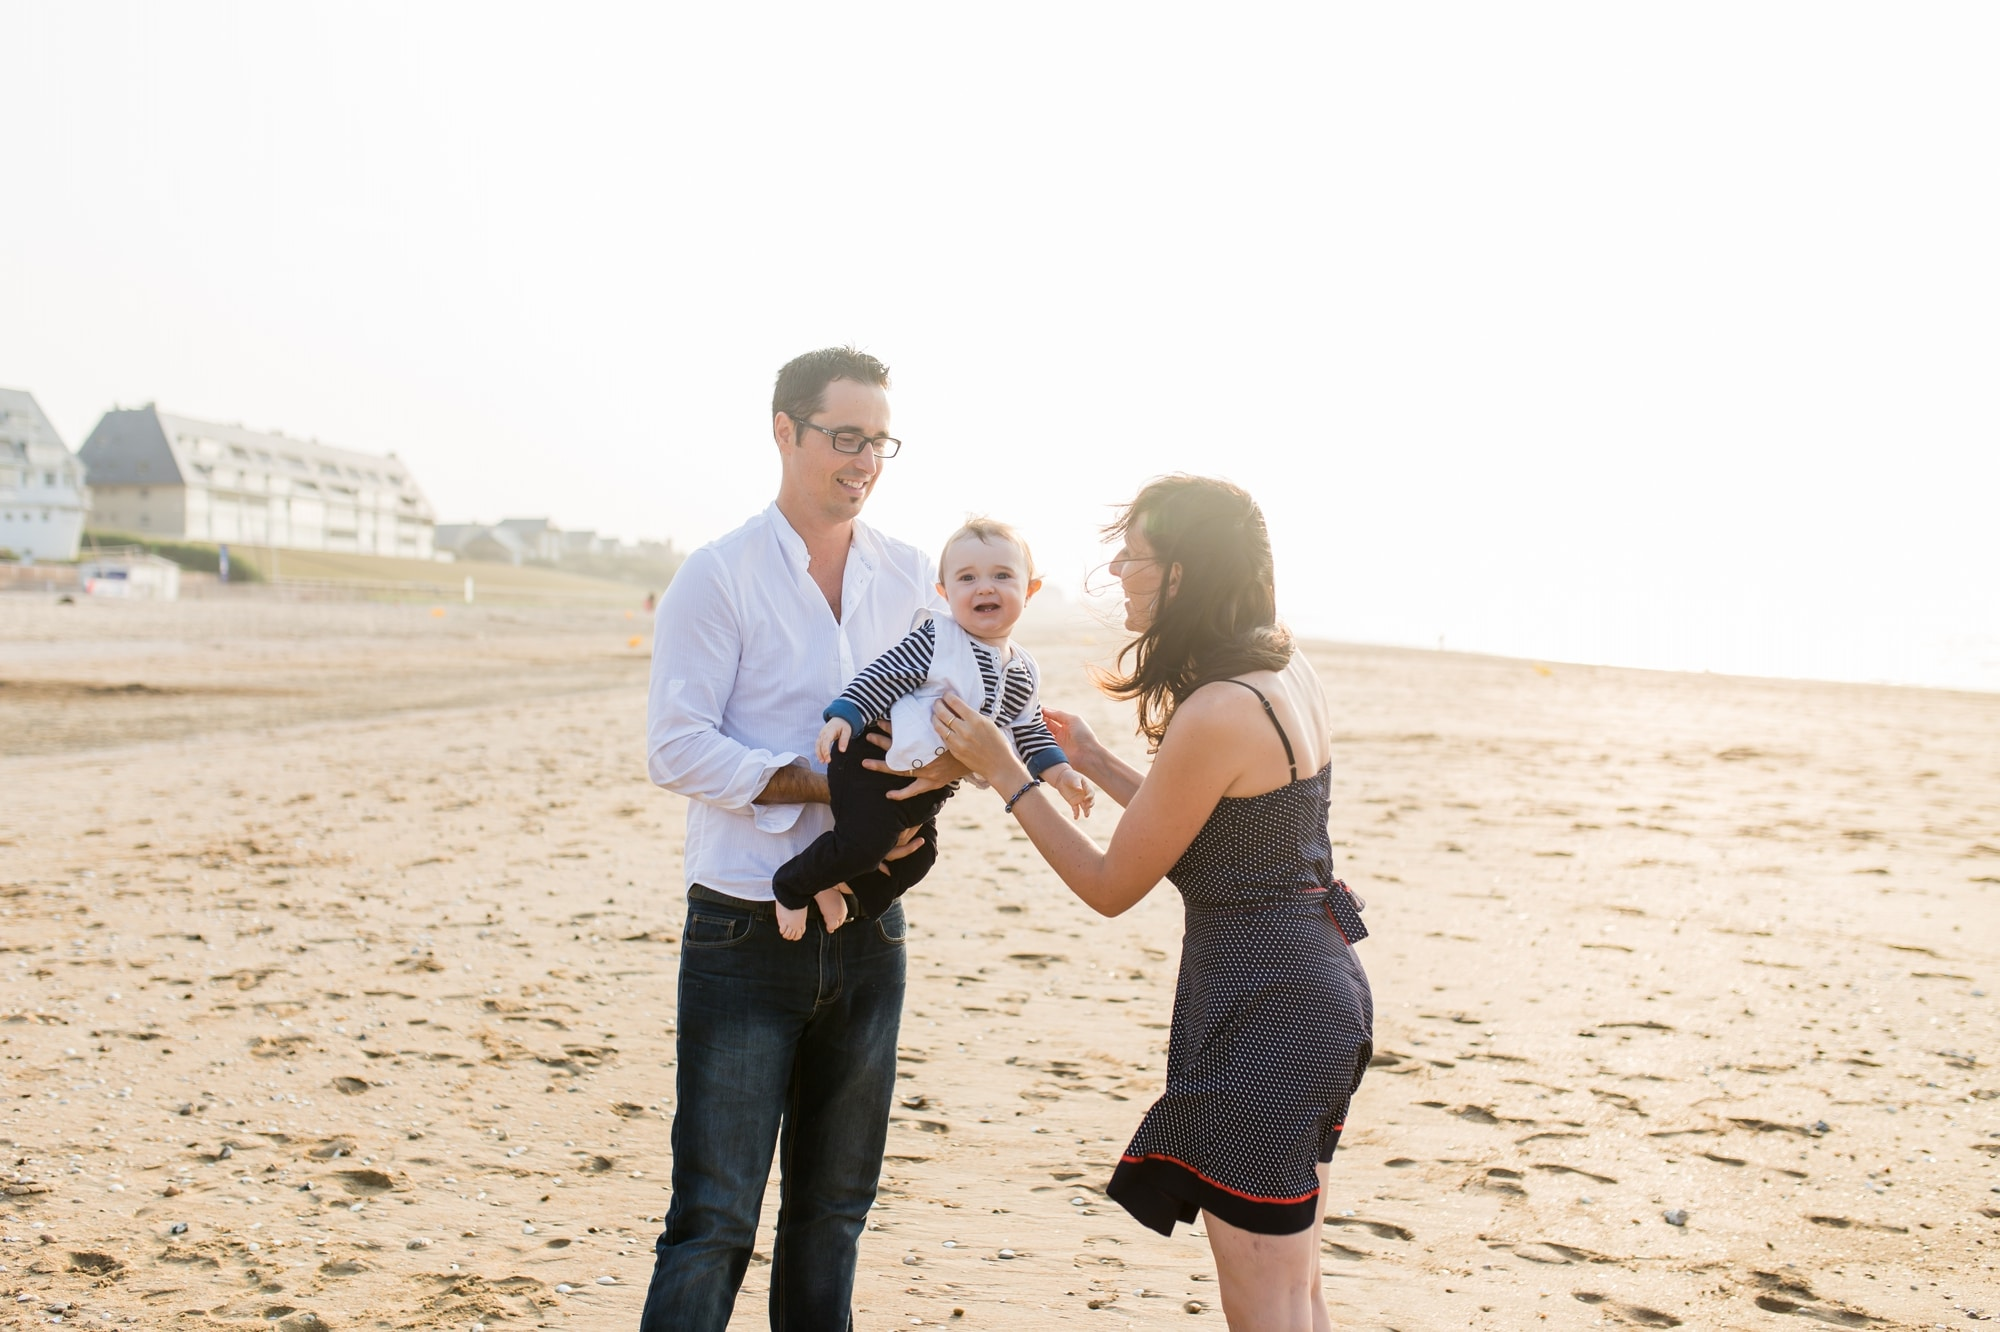 séance famille cabourg basse normandie photographe shooting lifestyle-4